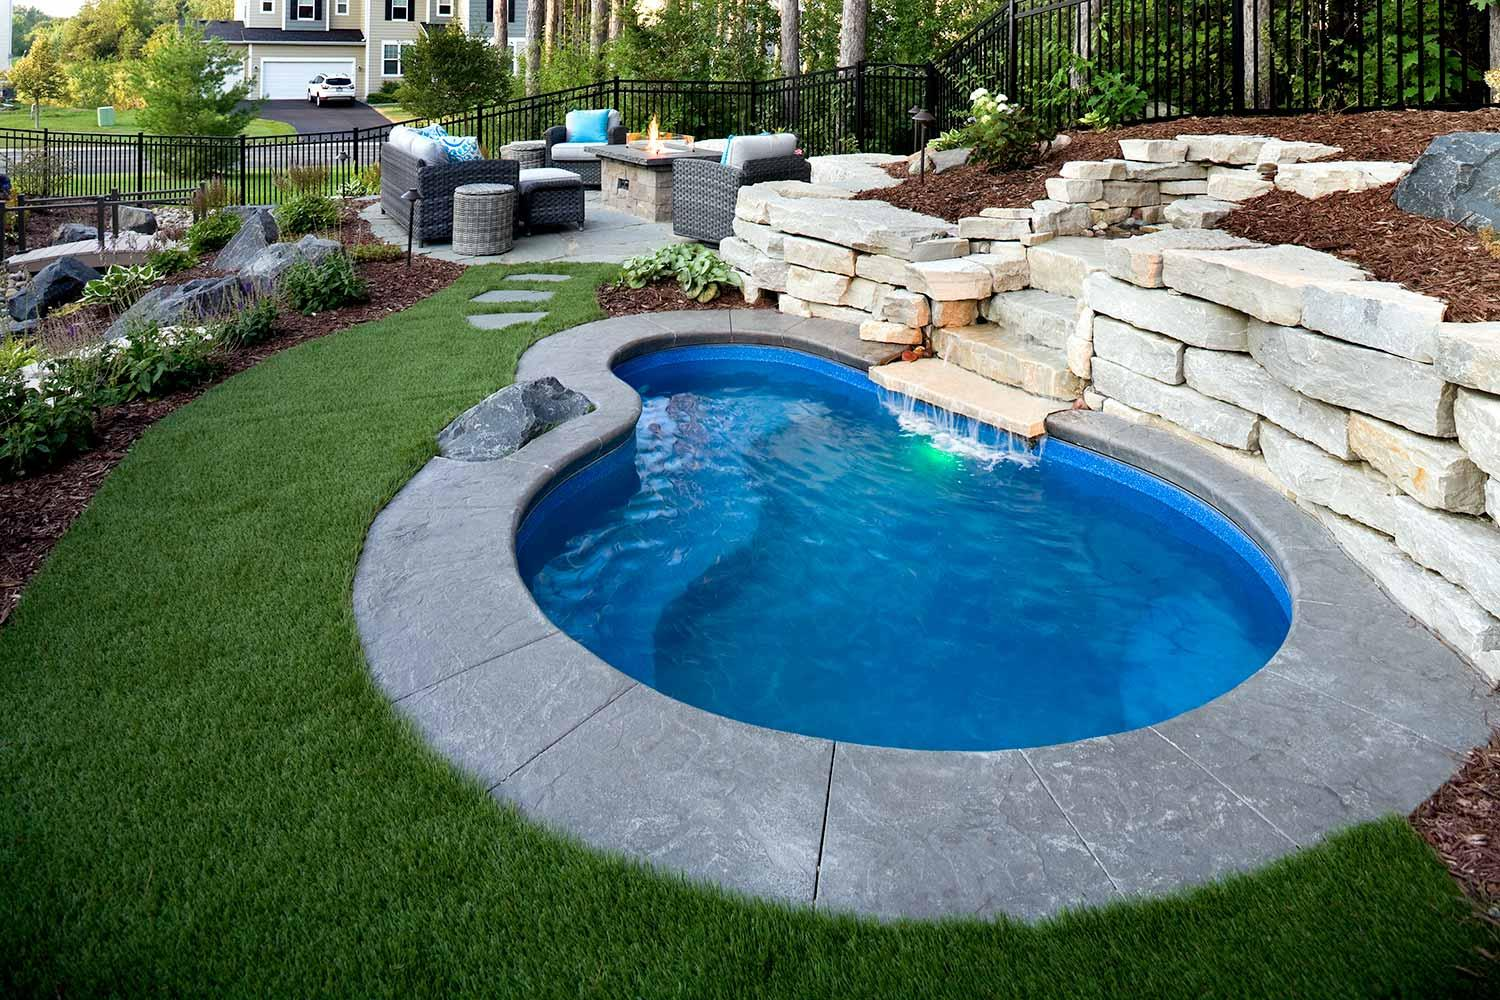 Inver grove heights backyard plunge pool